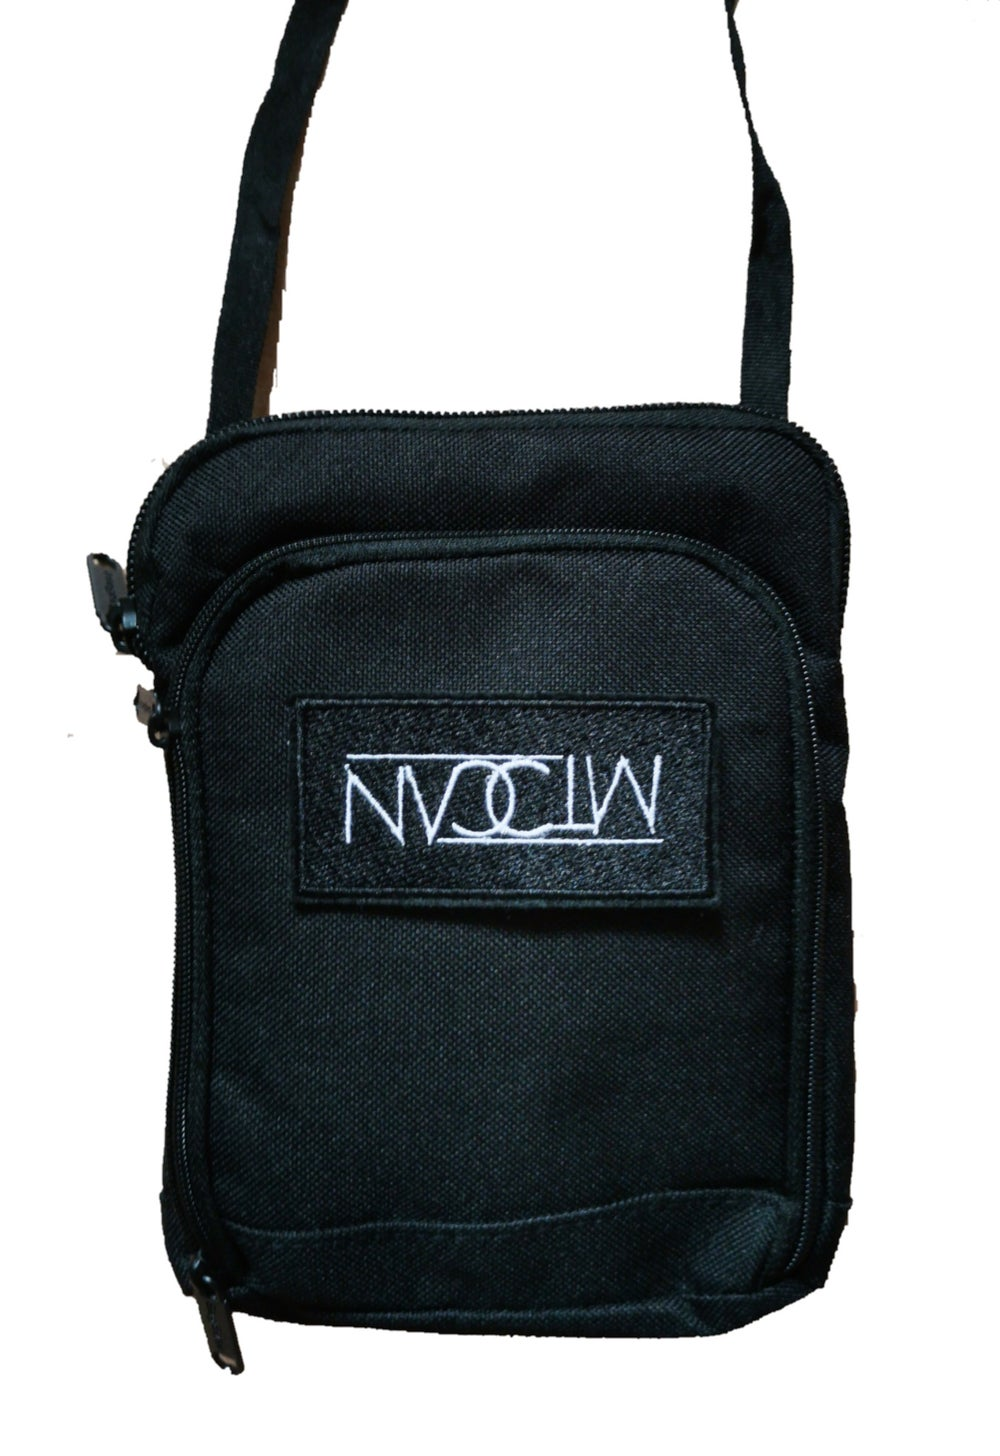 Image of NVCTM Shoulder Bag SMALL